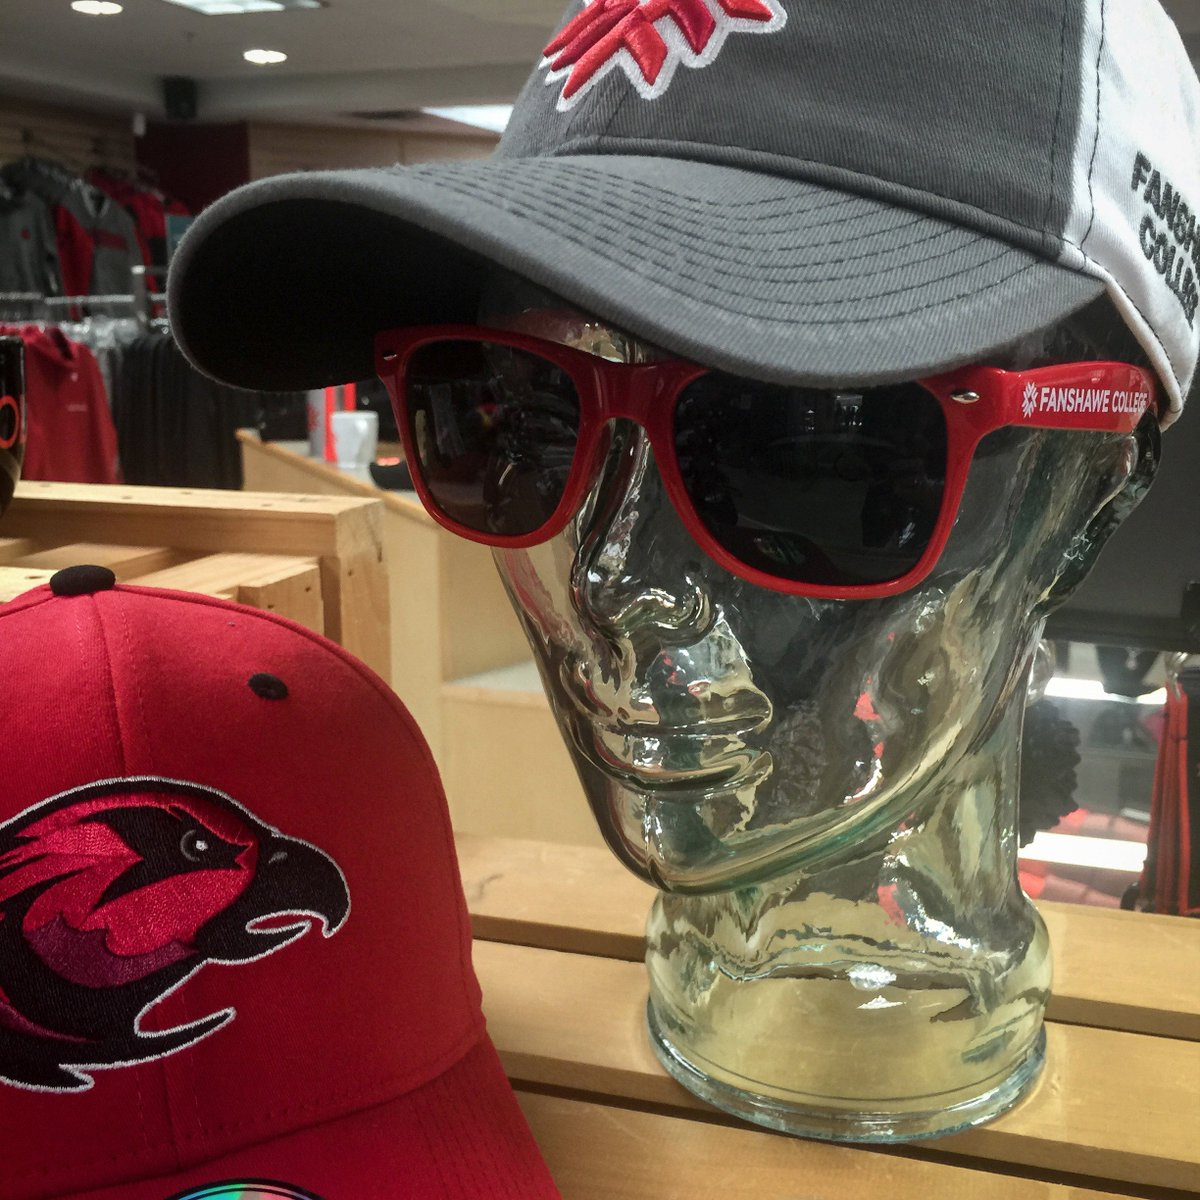 Eyeing up these #Fanshawe shades from the Red Zone? RT to win a pair - 3 random winners. #NationalSunglassesDay https://t.co/fIUL5hKEFv